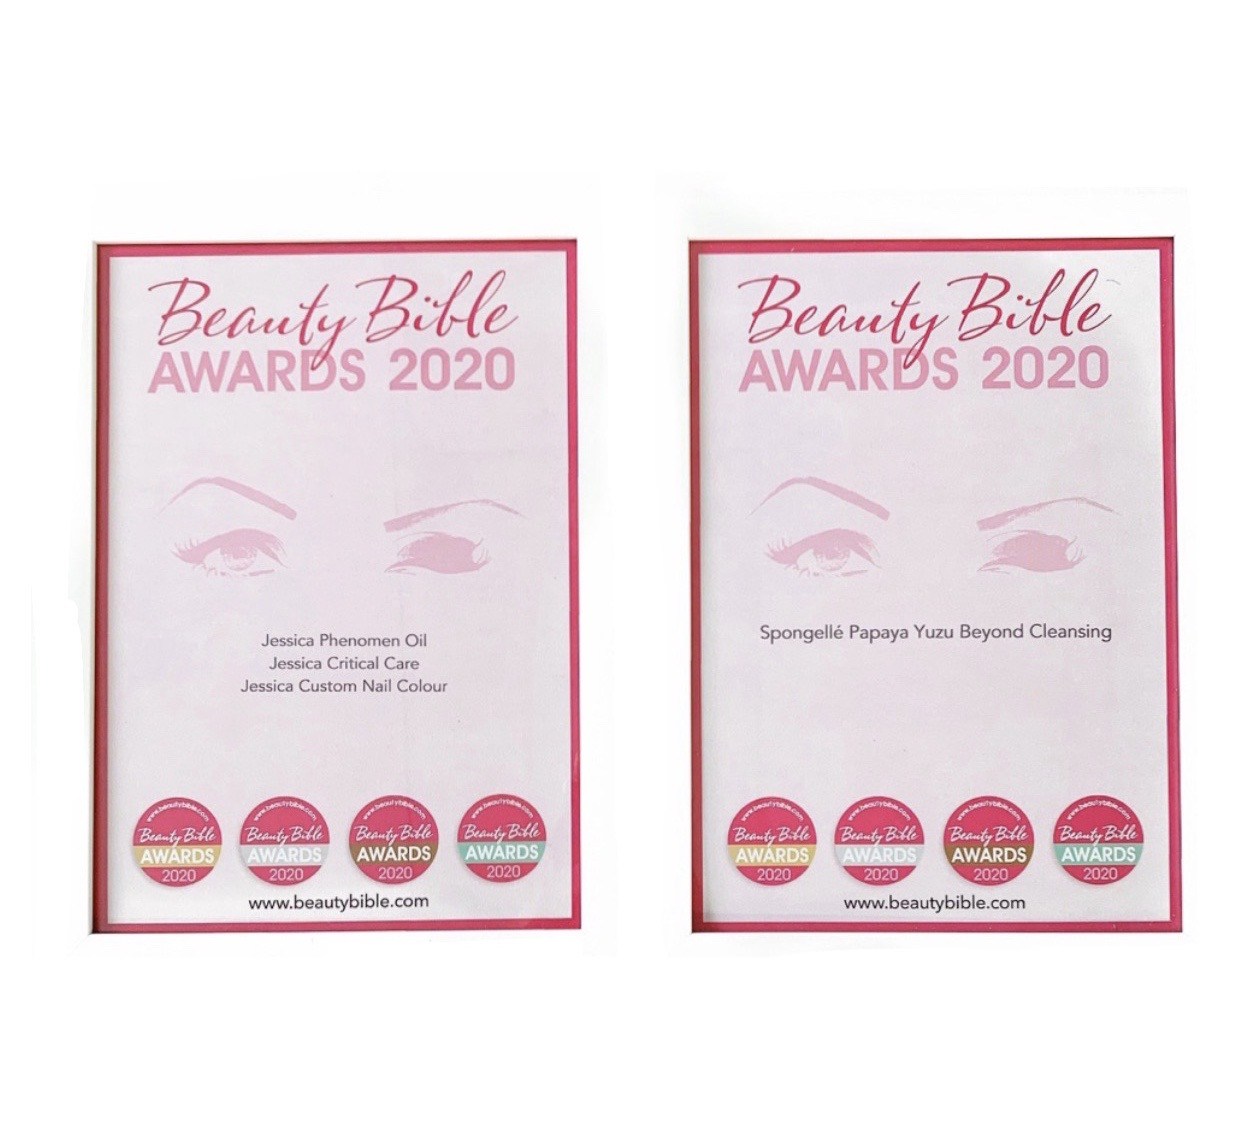 Beauty Bible Winner Awards 2020